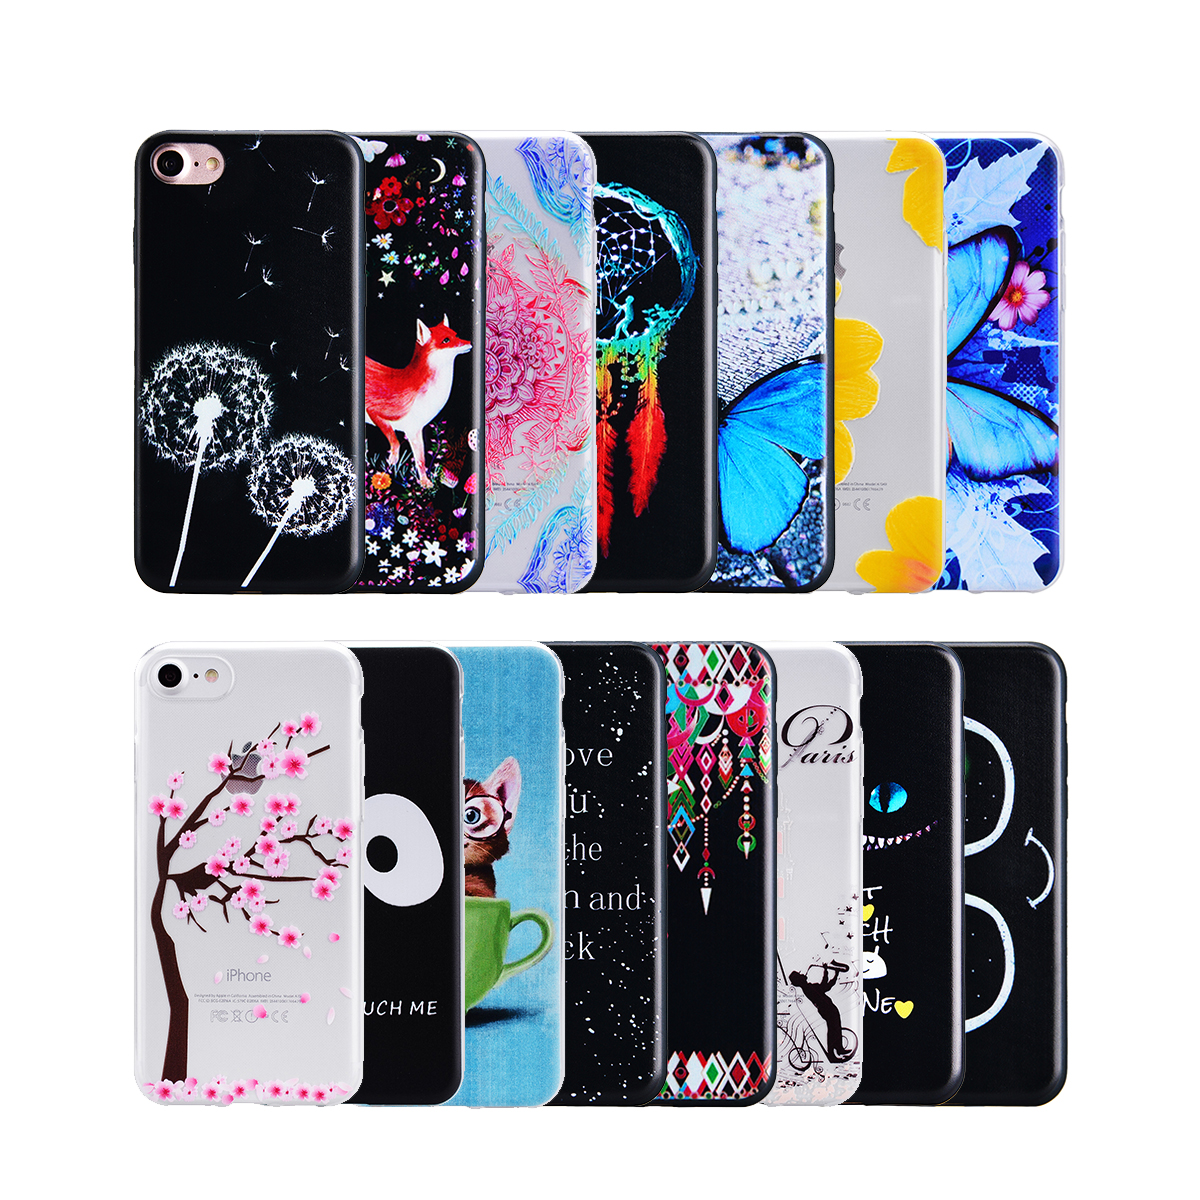 Yokata cute Case For iphone 7 7 plus soft Anti-knock Thin Slim Soft Cover Fitted case clear Silicone Case For iphone7plus